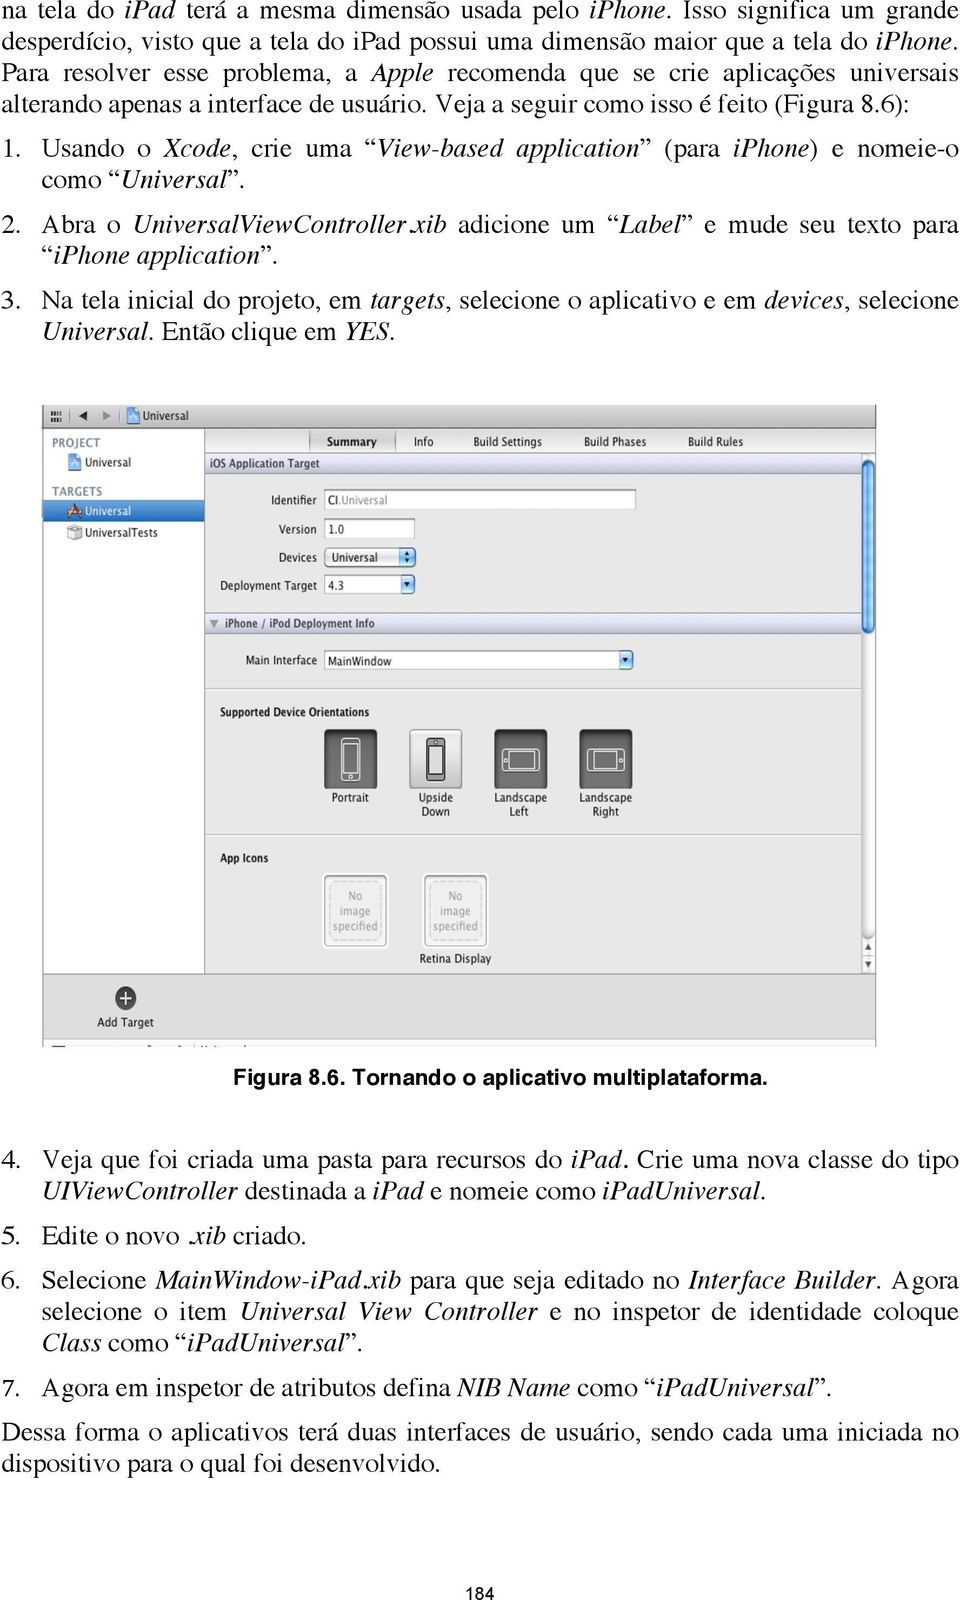 Usando o Xcode, crie uma View-based application (para iphone) e nomeie-o como Universal. 2. Abra o UniversalViewController.xib adicione um Label e mude seu texto para iphone application. 3.